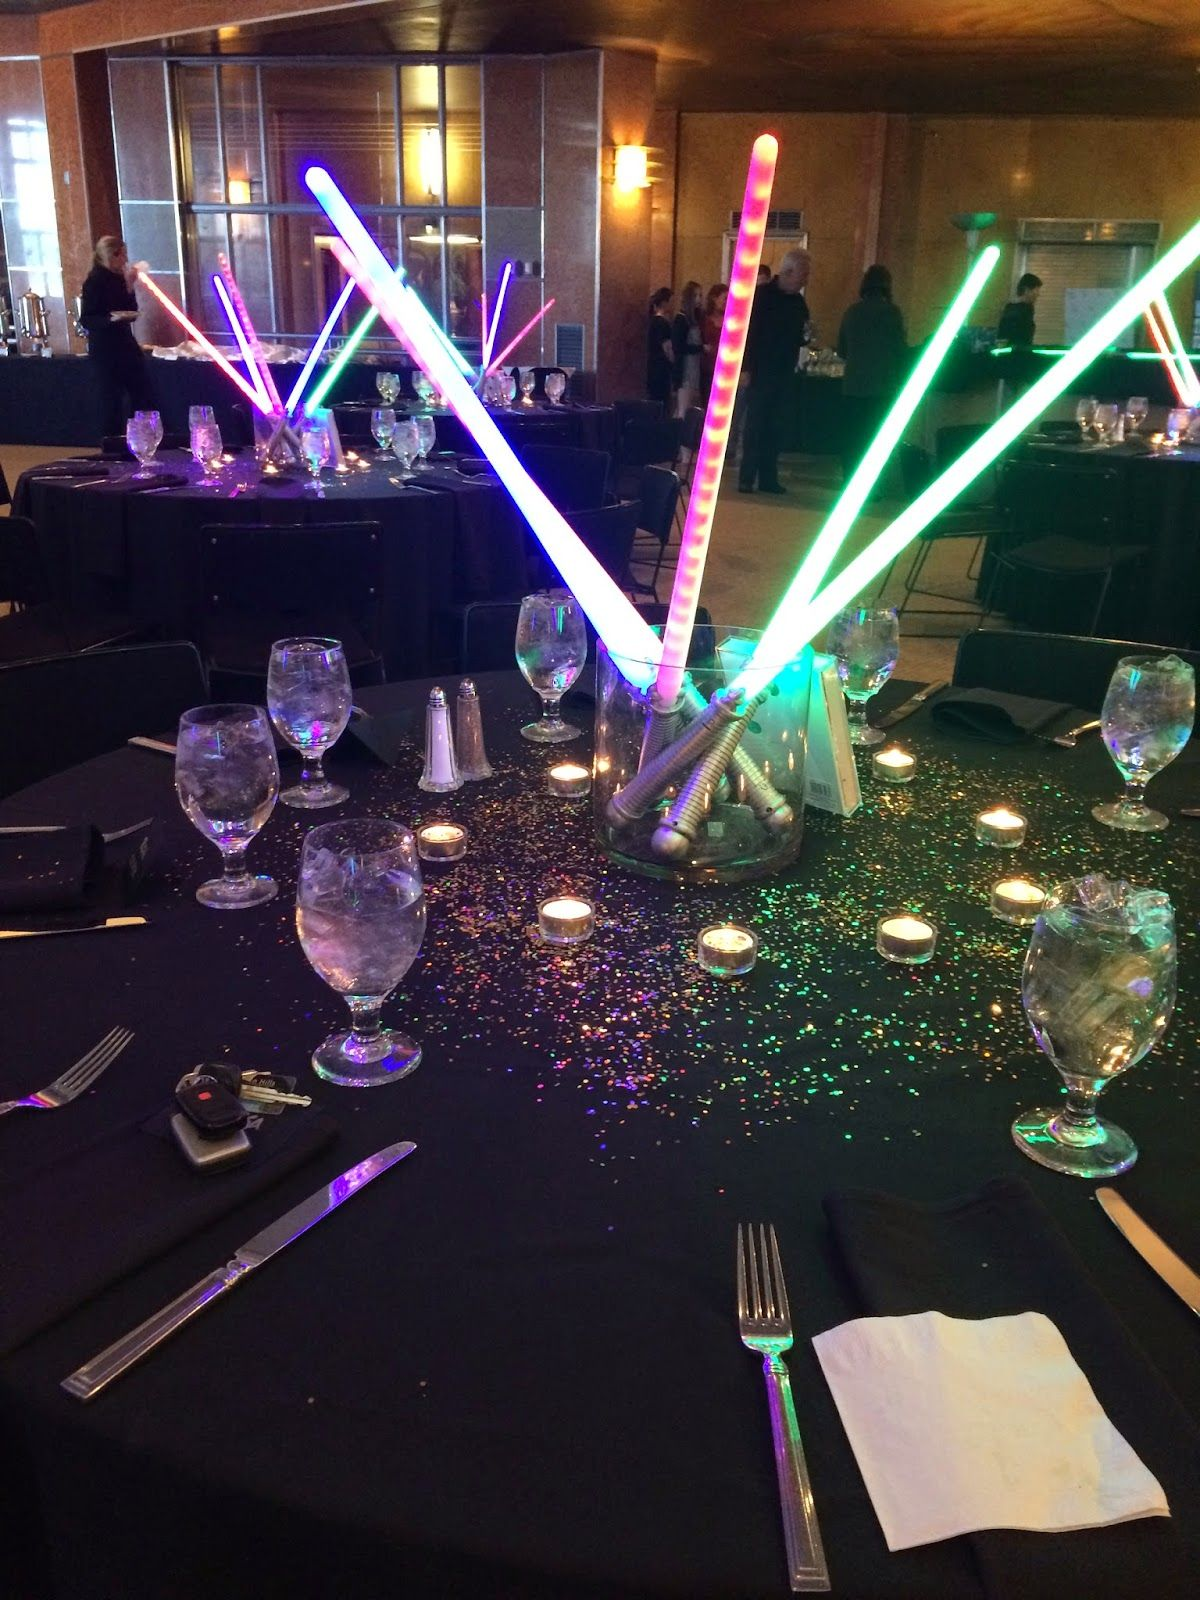 Light Saber Centerpieces Turn Into Party Favors Later